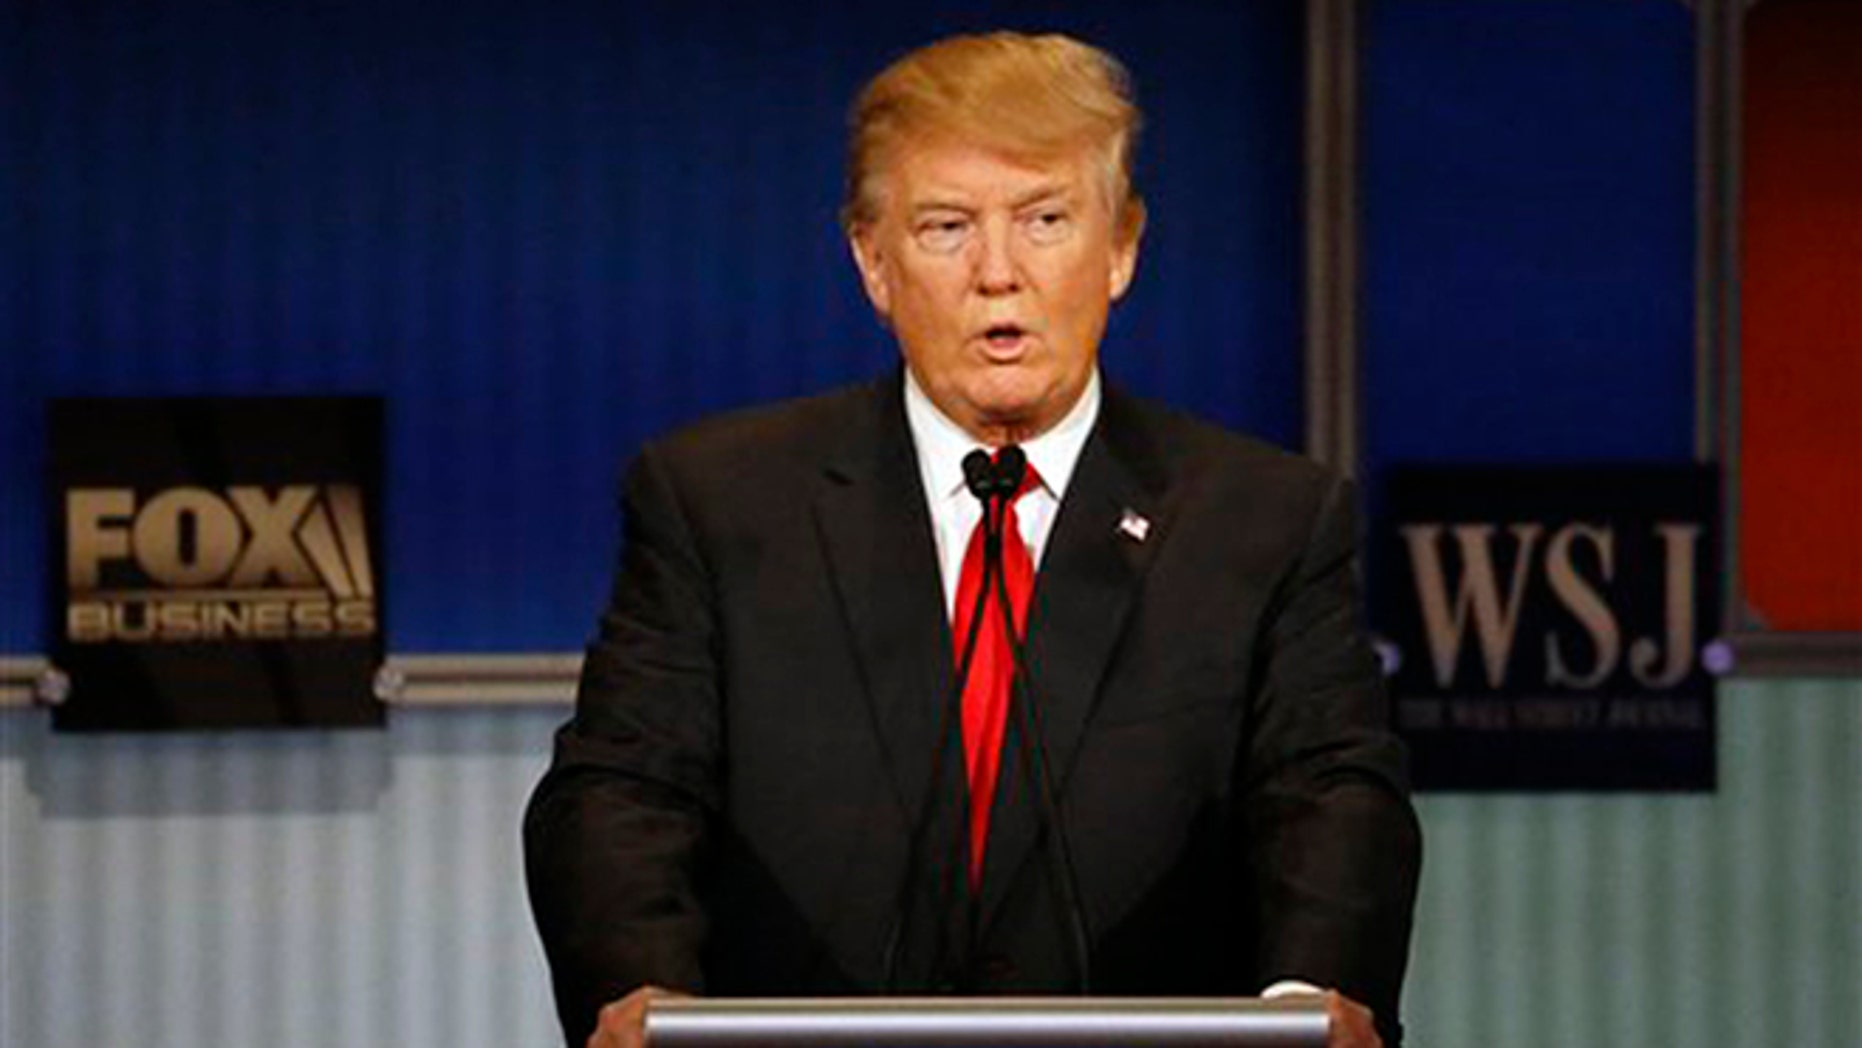 Donald Trump speaks during Republican presidential debate at Milwaukee Theatre, Tuesday, Nov. 10, 2015, in Milwaukee. (AP Photo/Morry Gash)